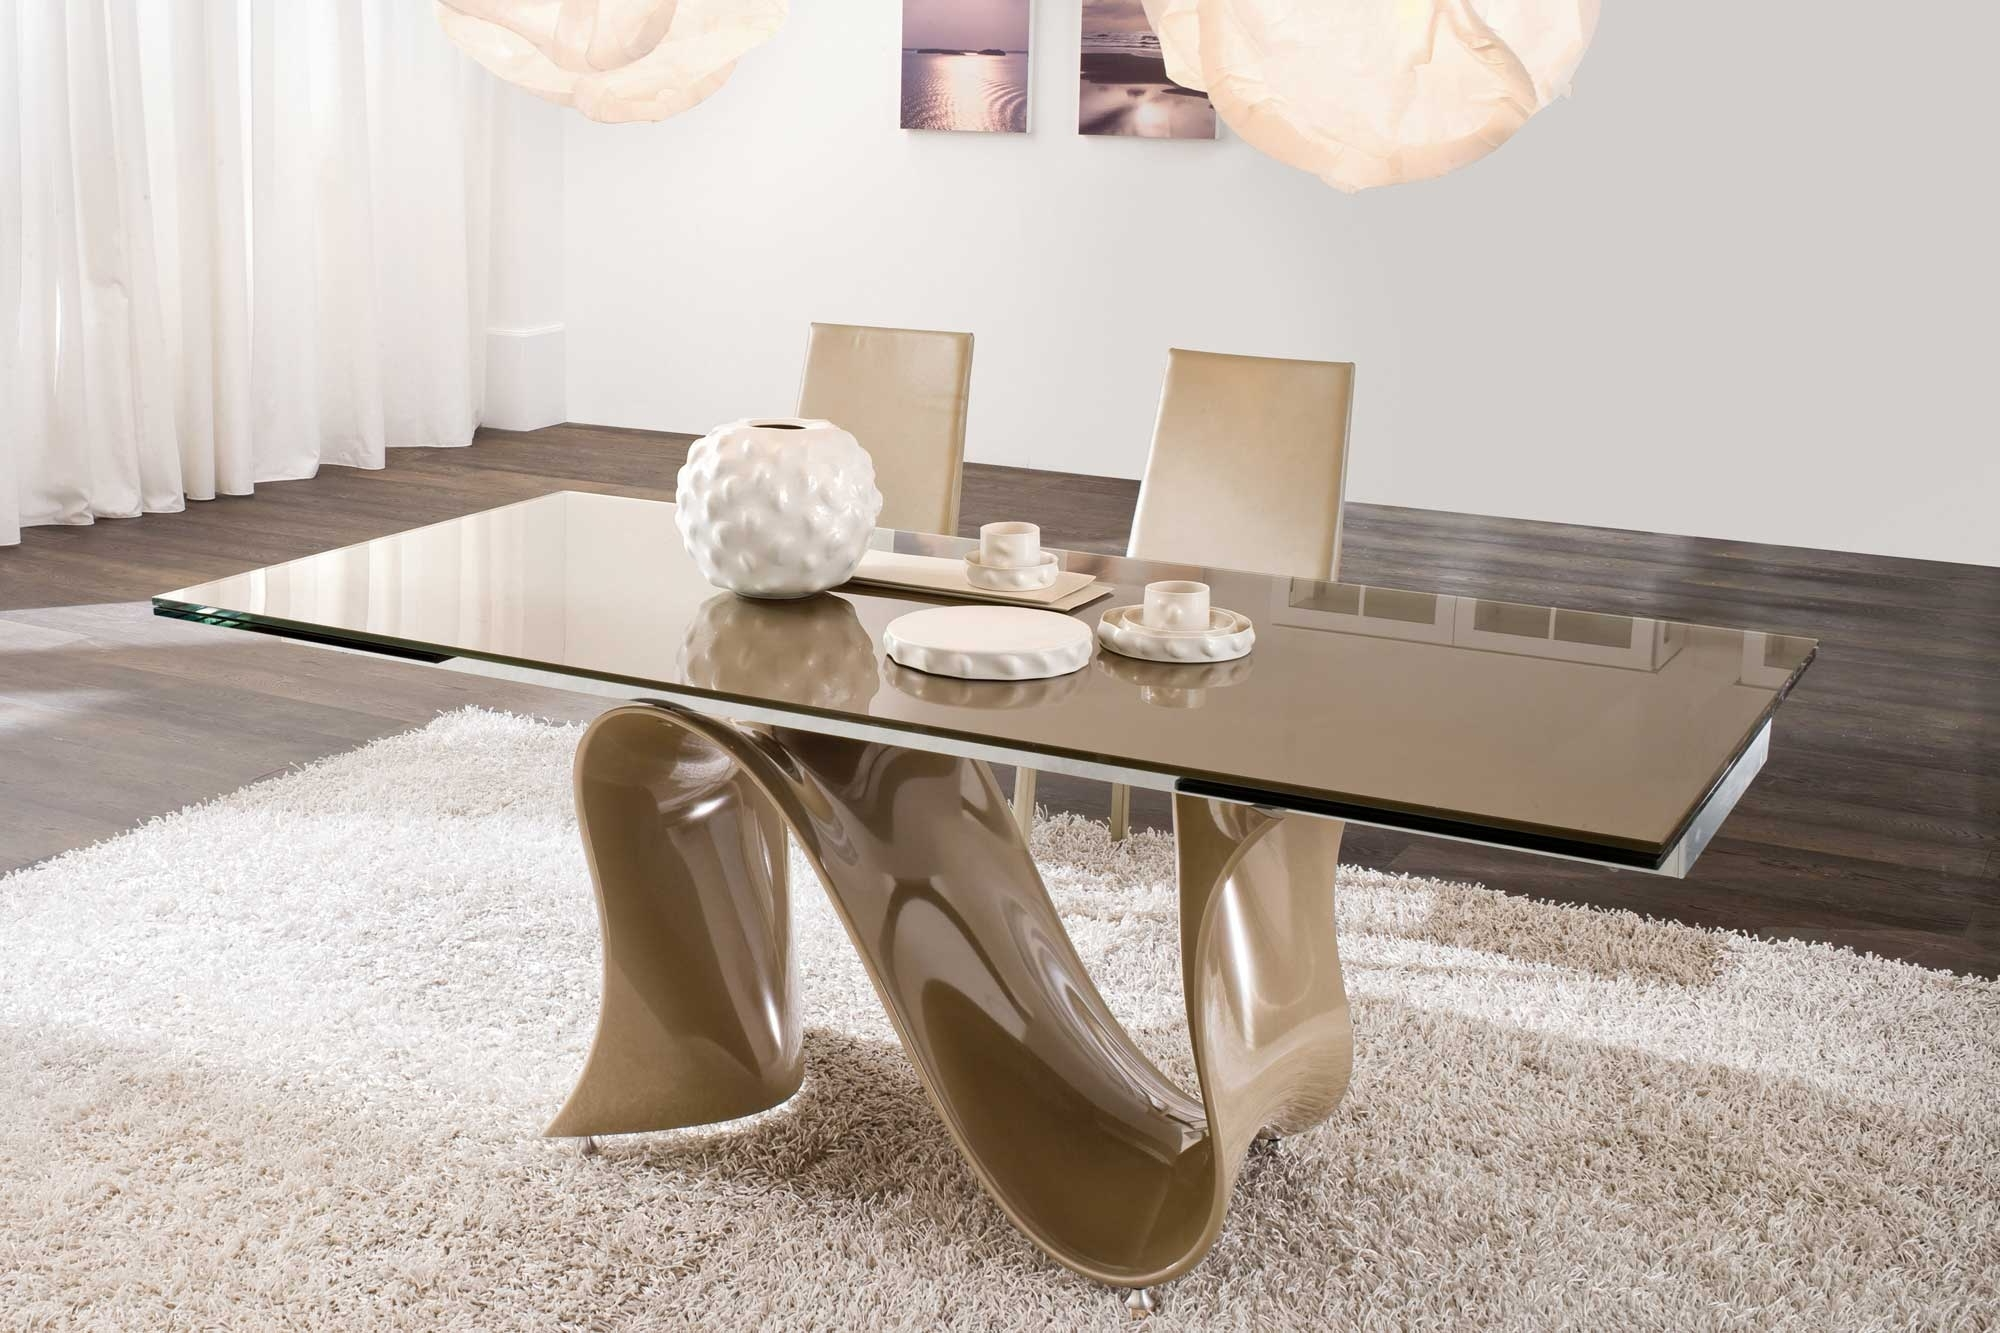 Dining Room Contemporary Furniture Dining Table Contemporary Dinette throughout 2018 Contemporary Dining Room Tables And Chairs